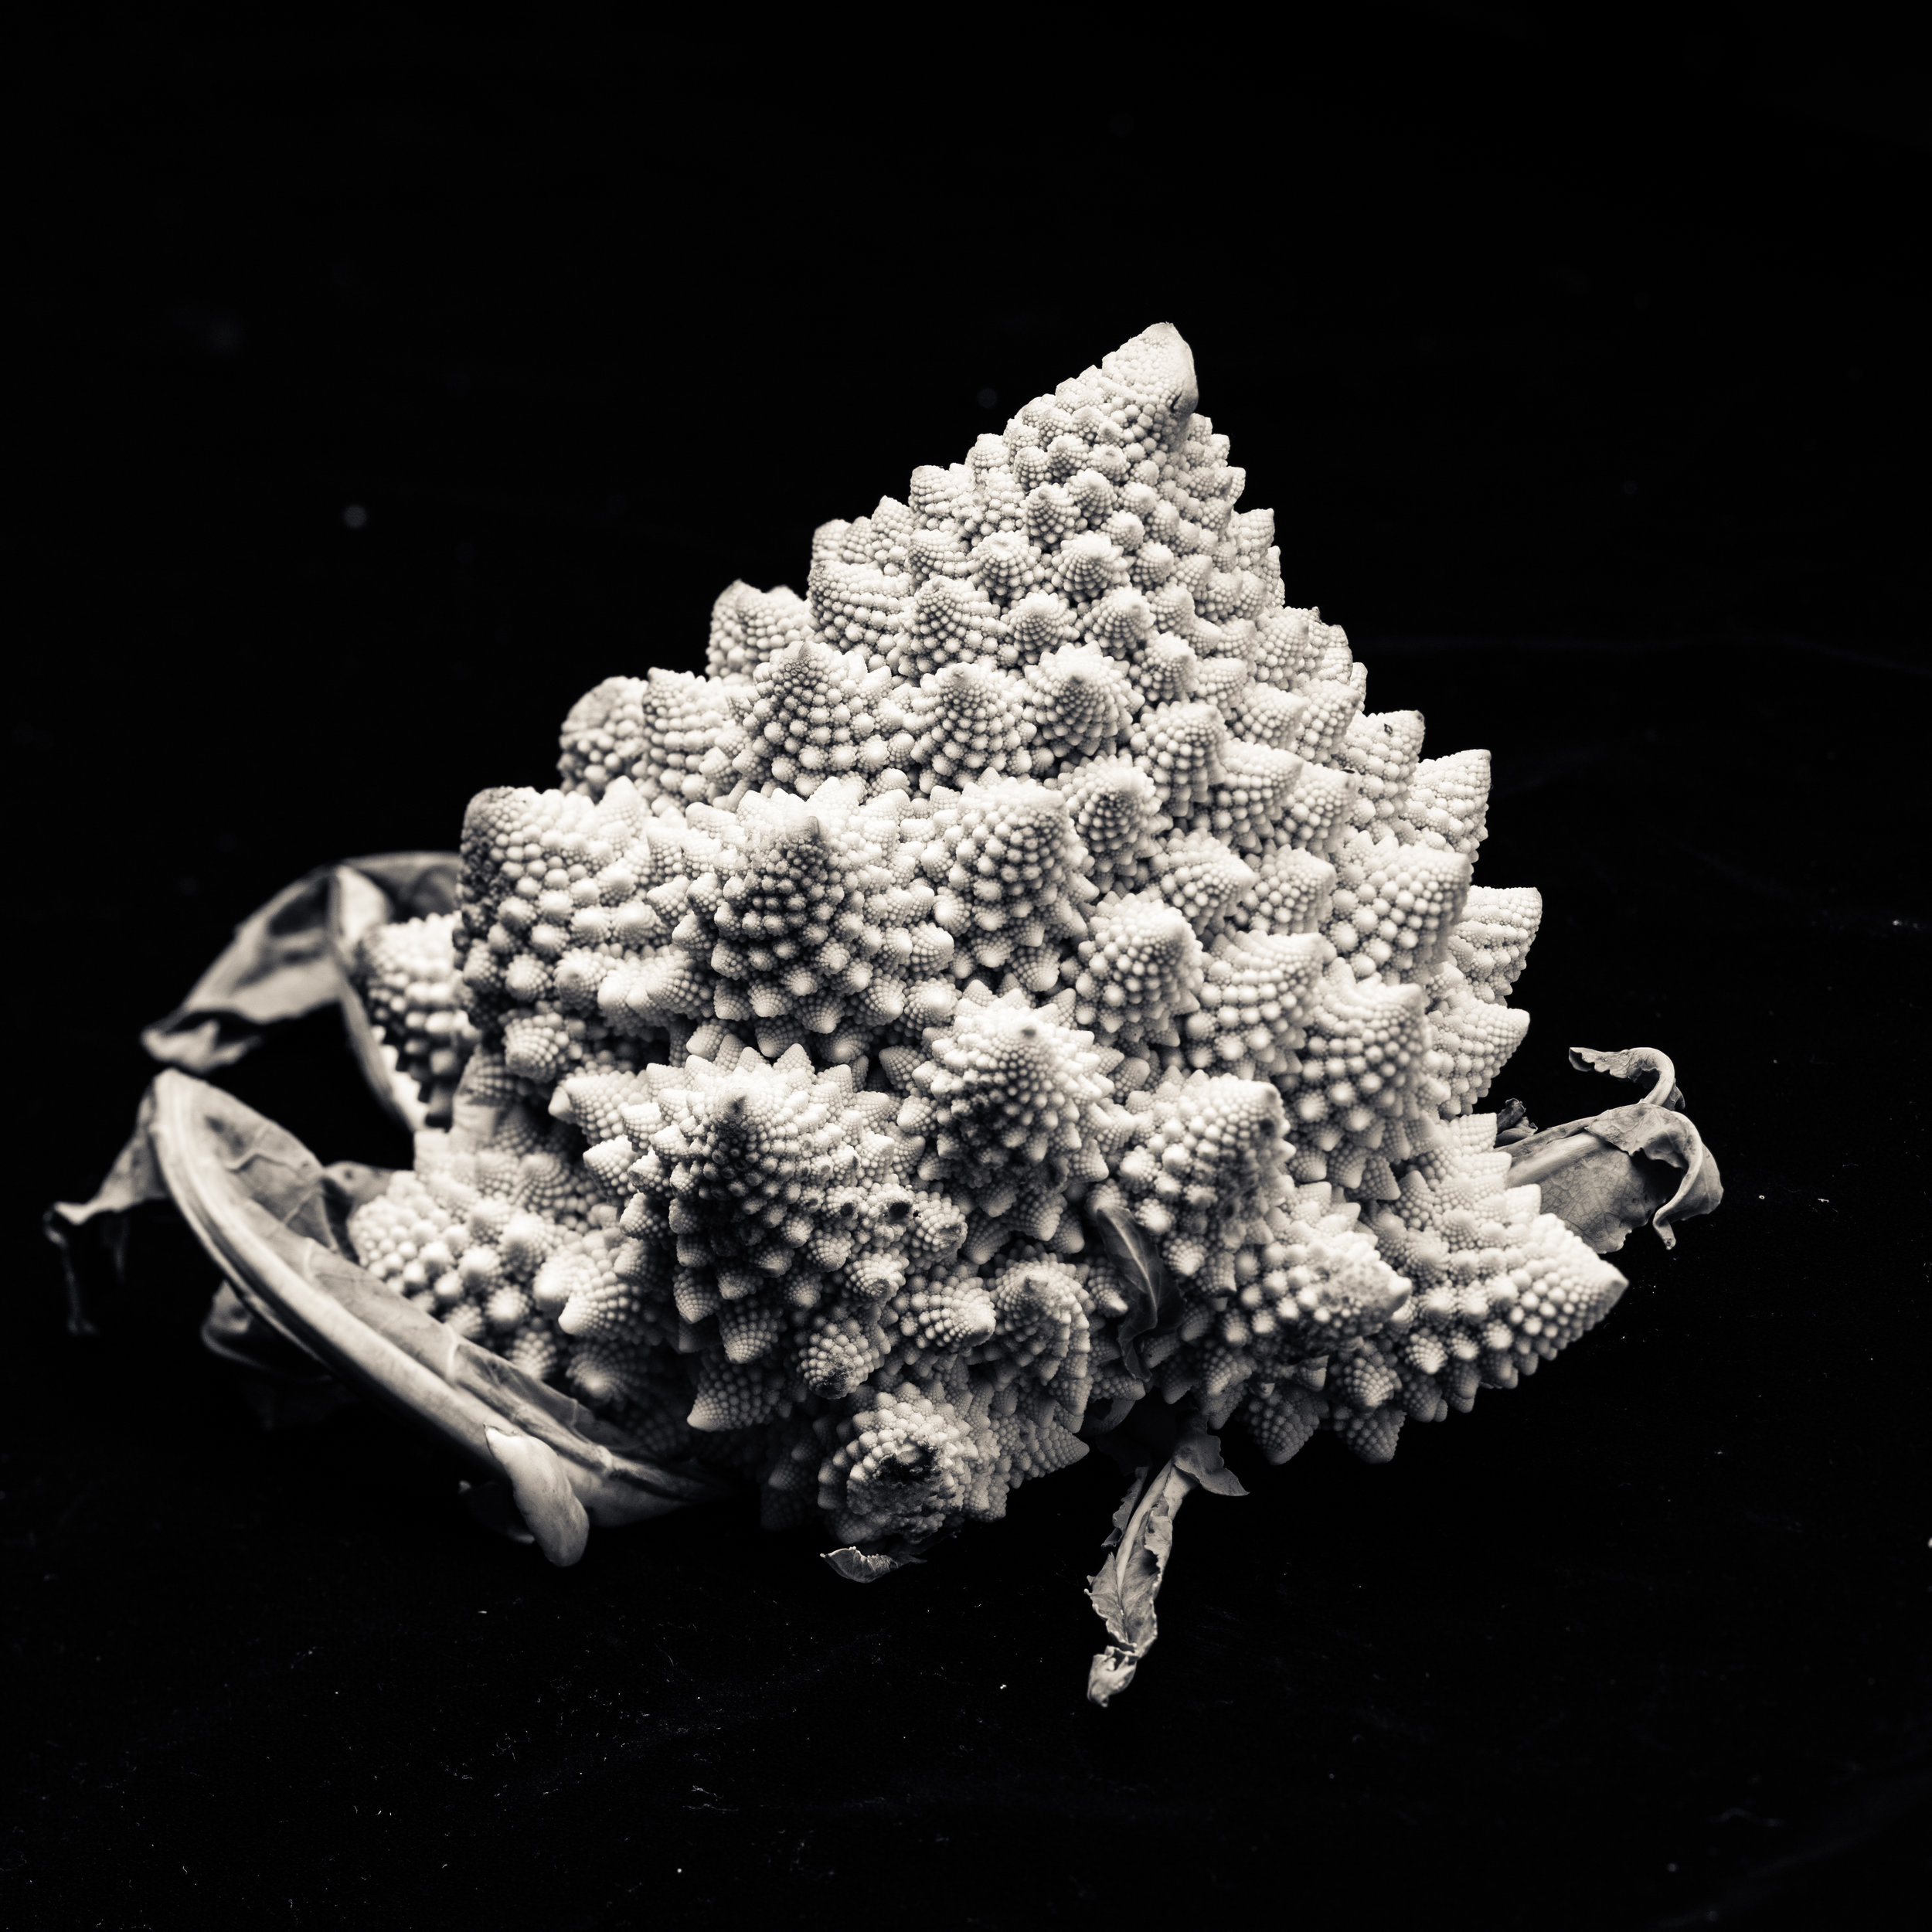 Black white romanesco broccoli fractal pattern